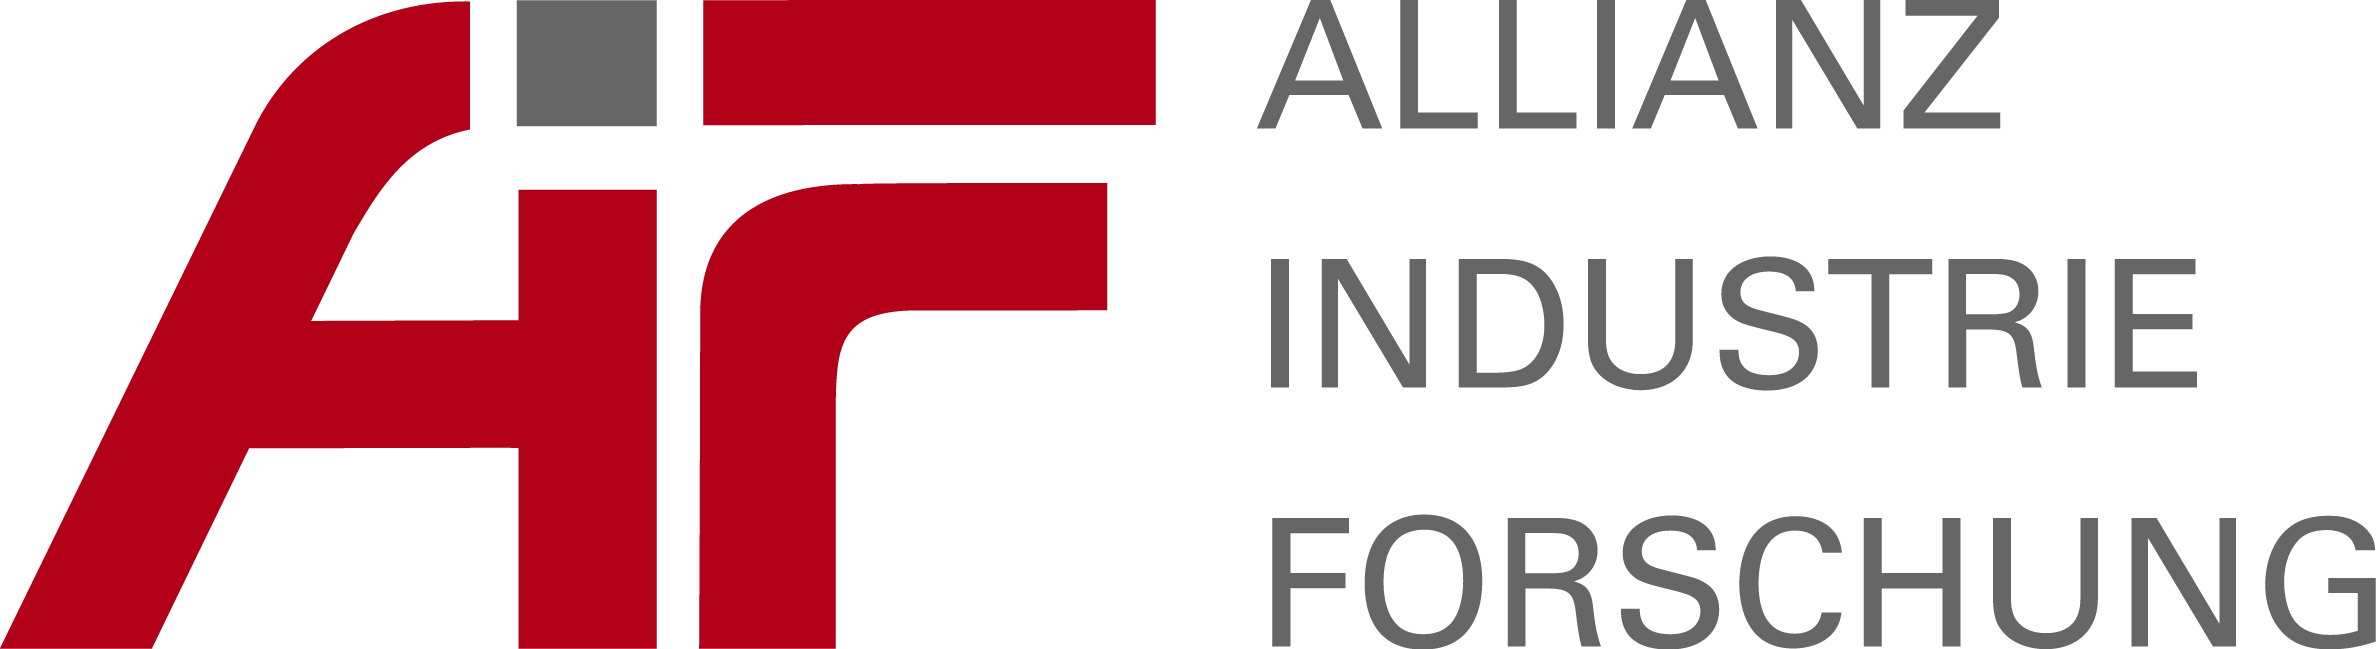 AF Allianz Industrie Forschung